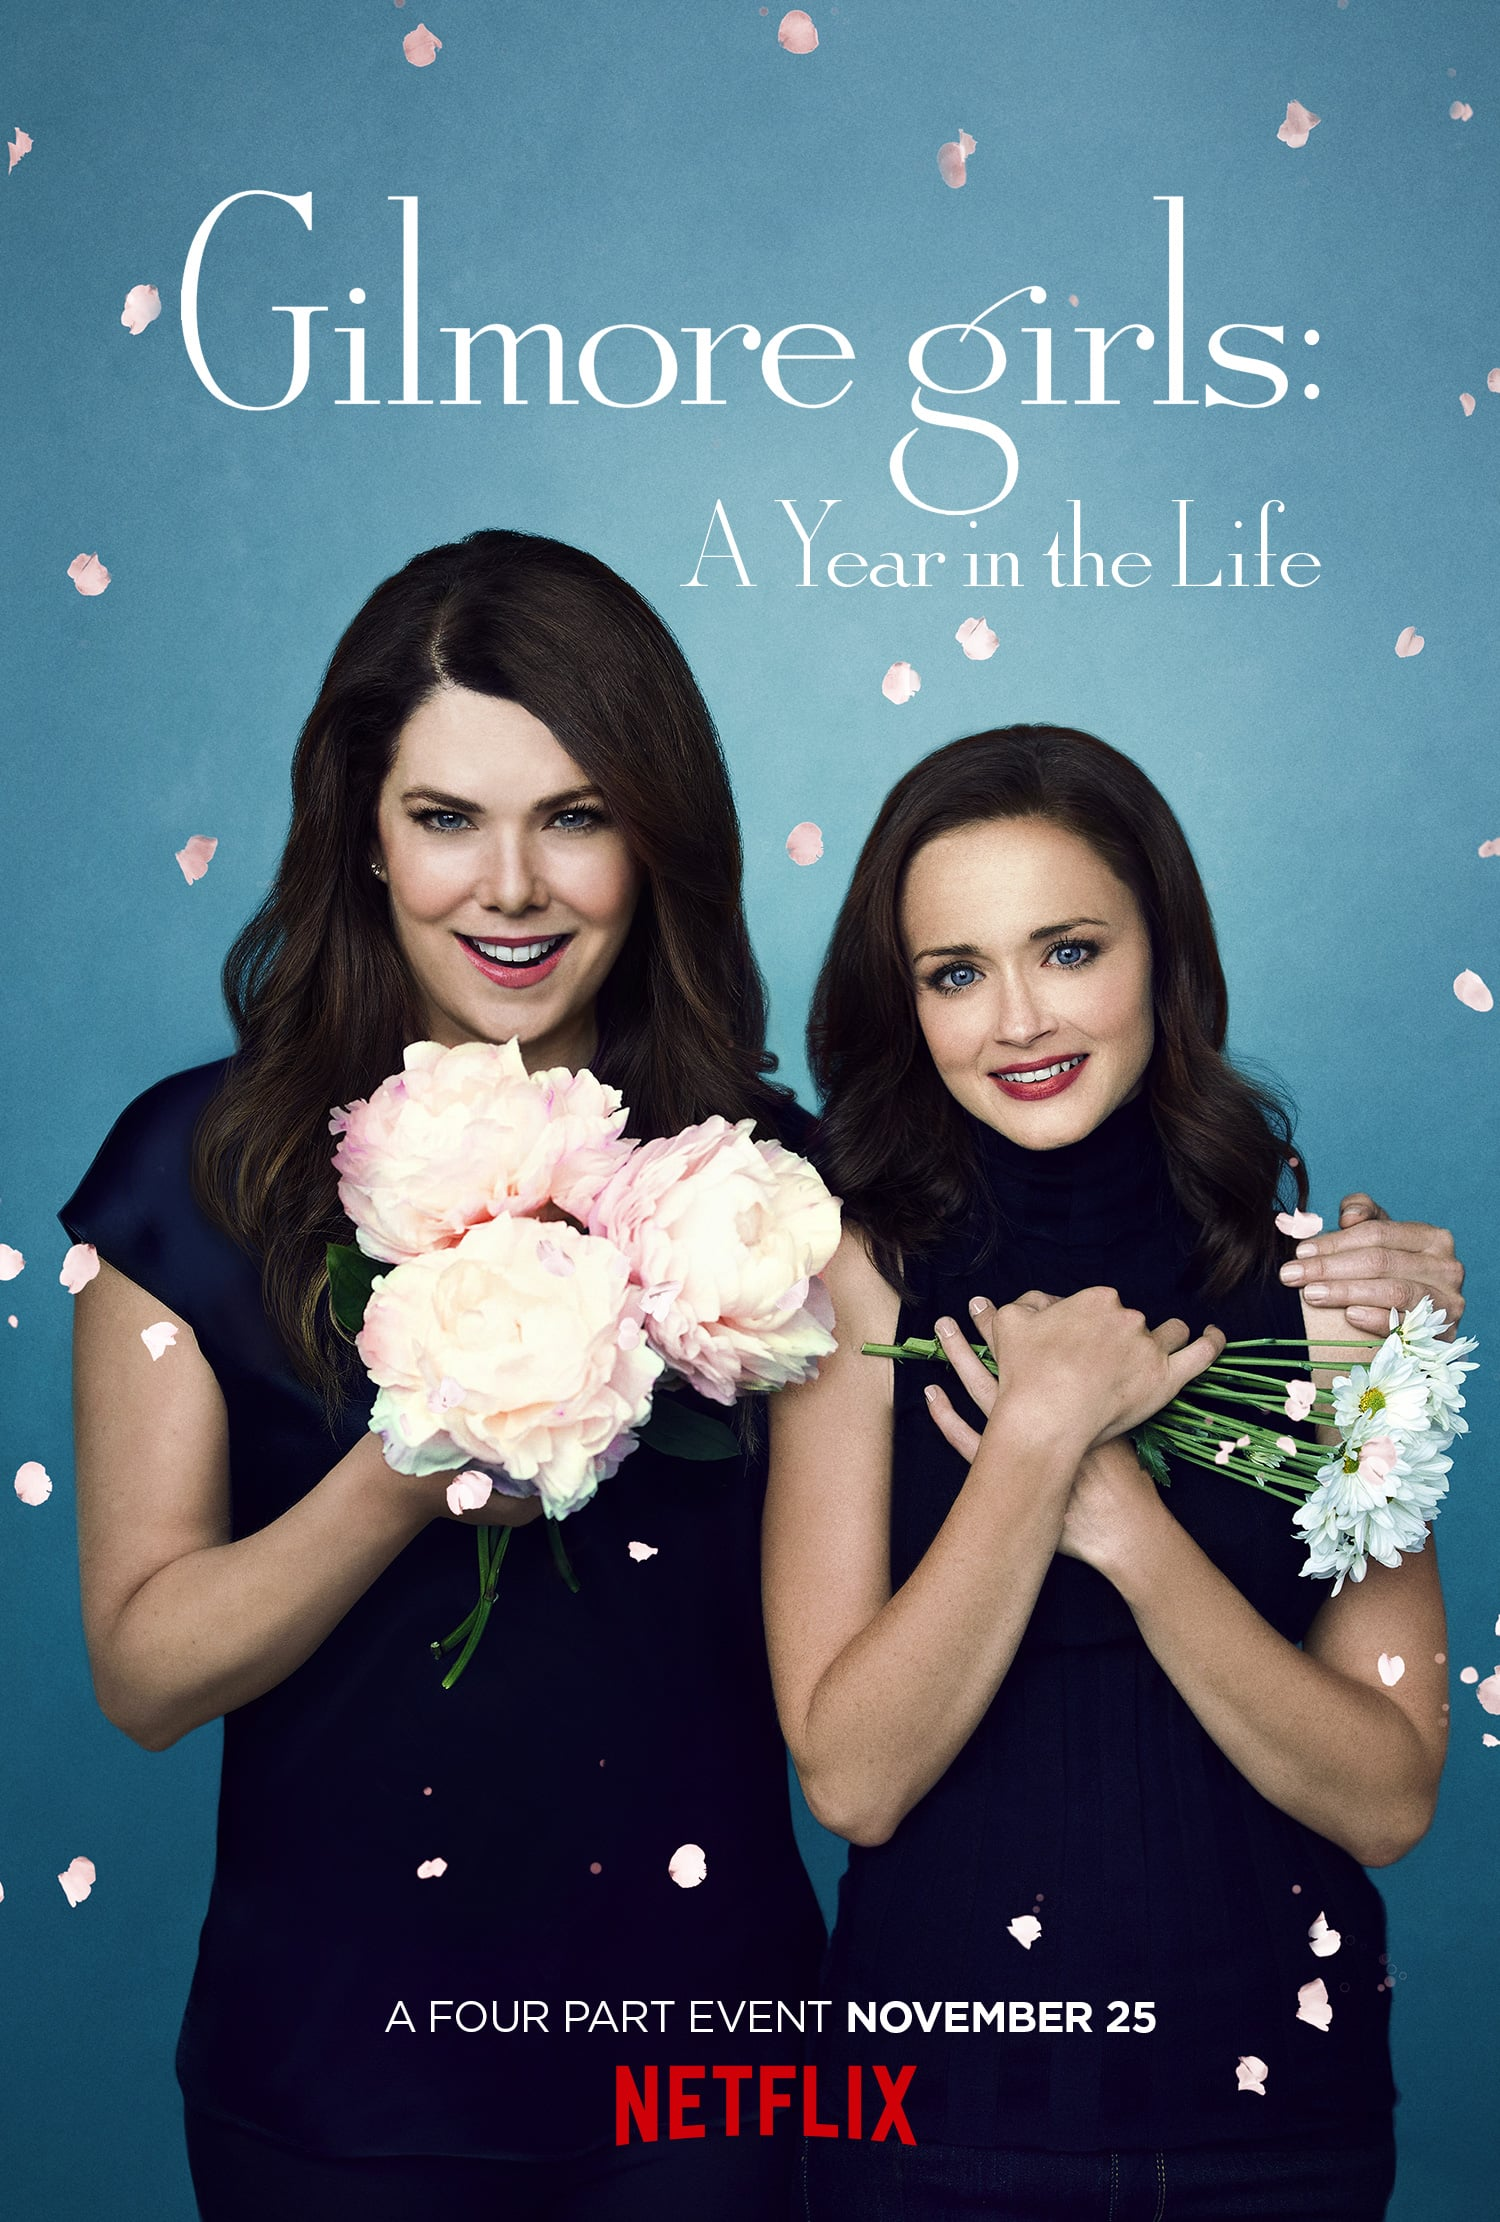 gilmore singles Meet gilmore city singles online & chat in the forums dhu is a 100% free dating site to find personals & casual encounters in gilmore city.